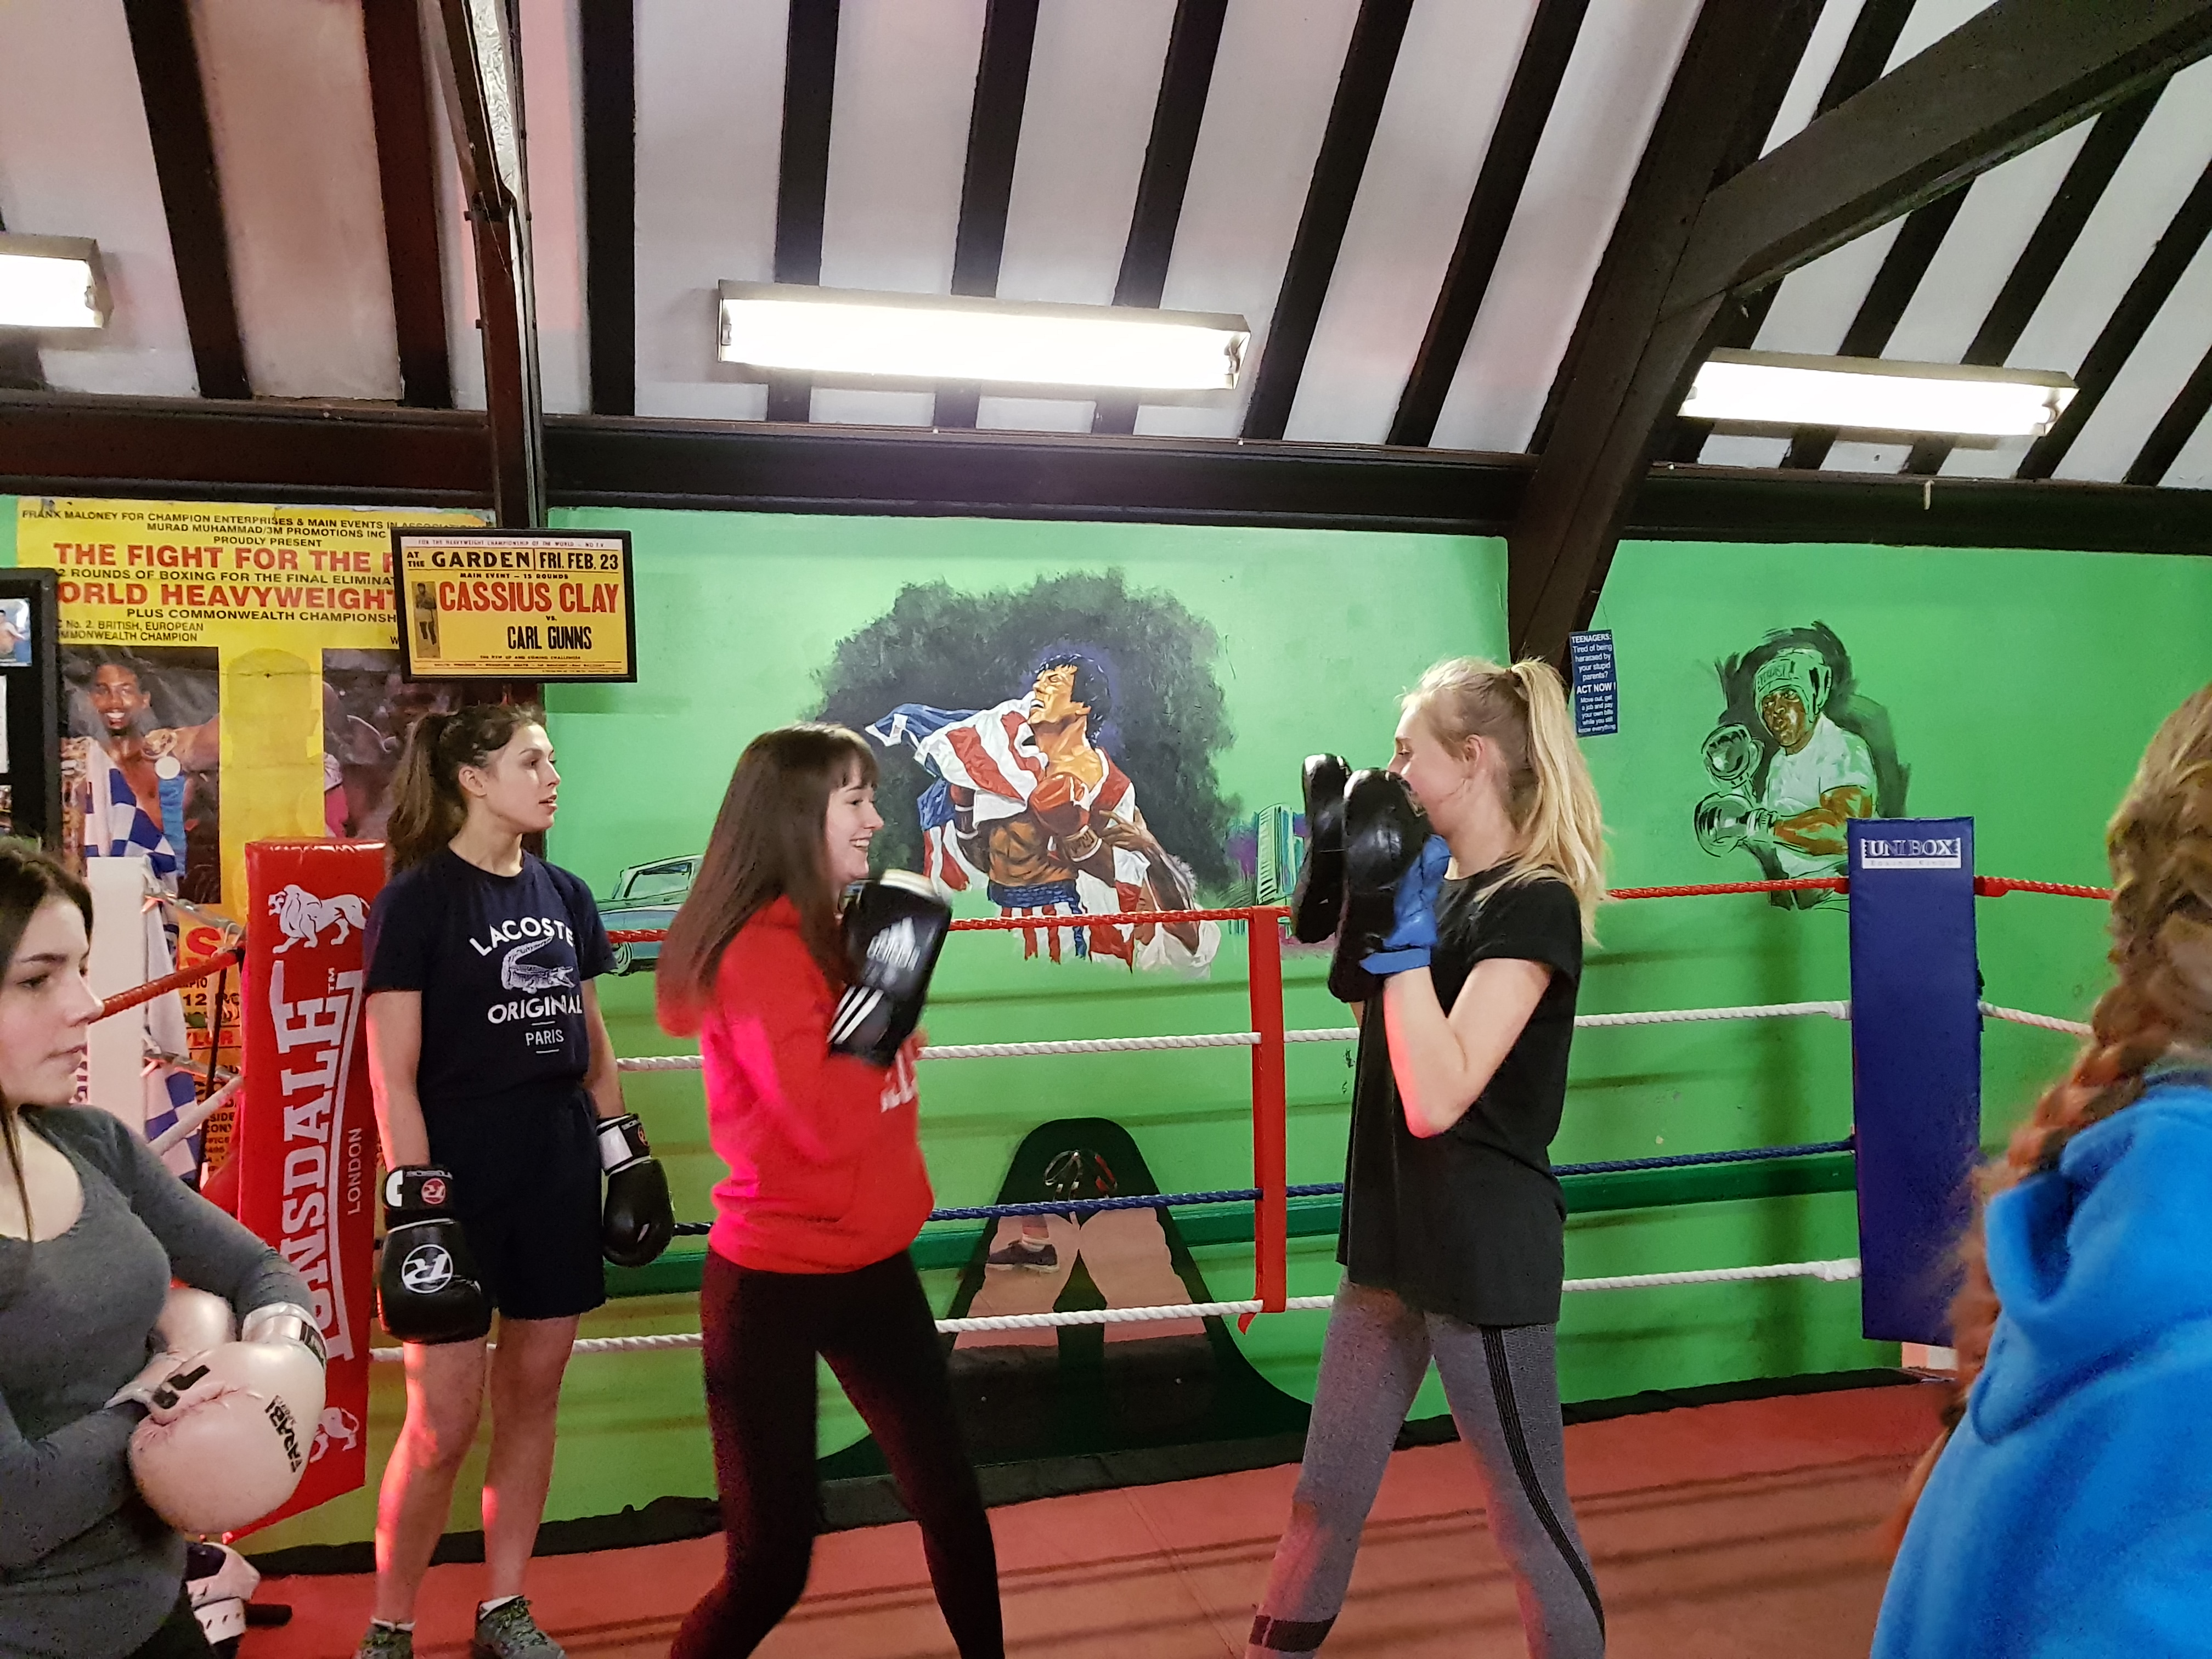 Community Grant Scheme Awards Grant To Carl Gunn's Boxing Gym